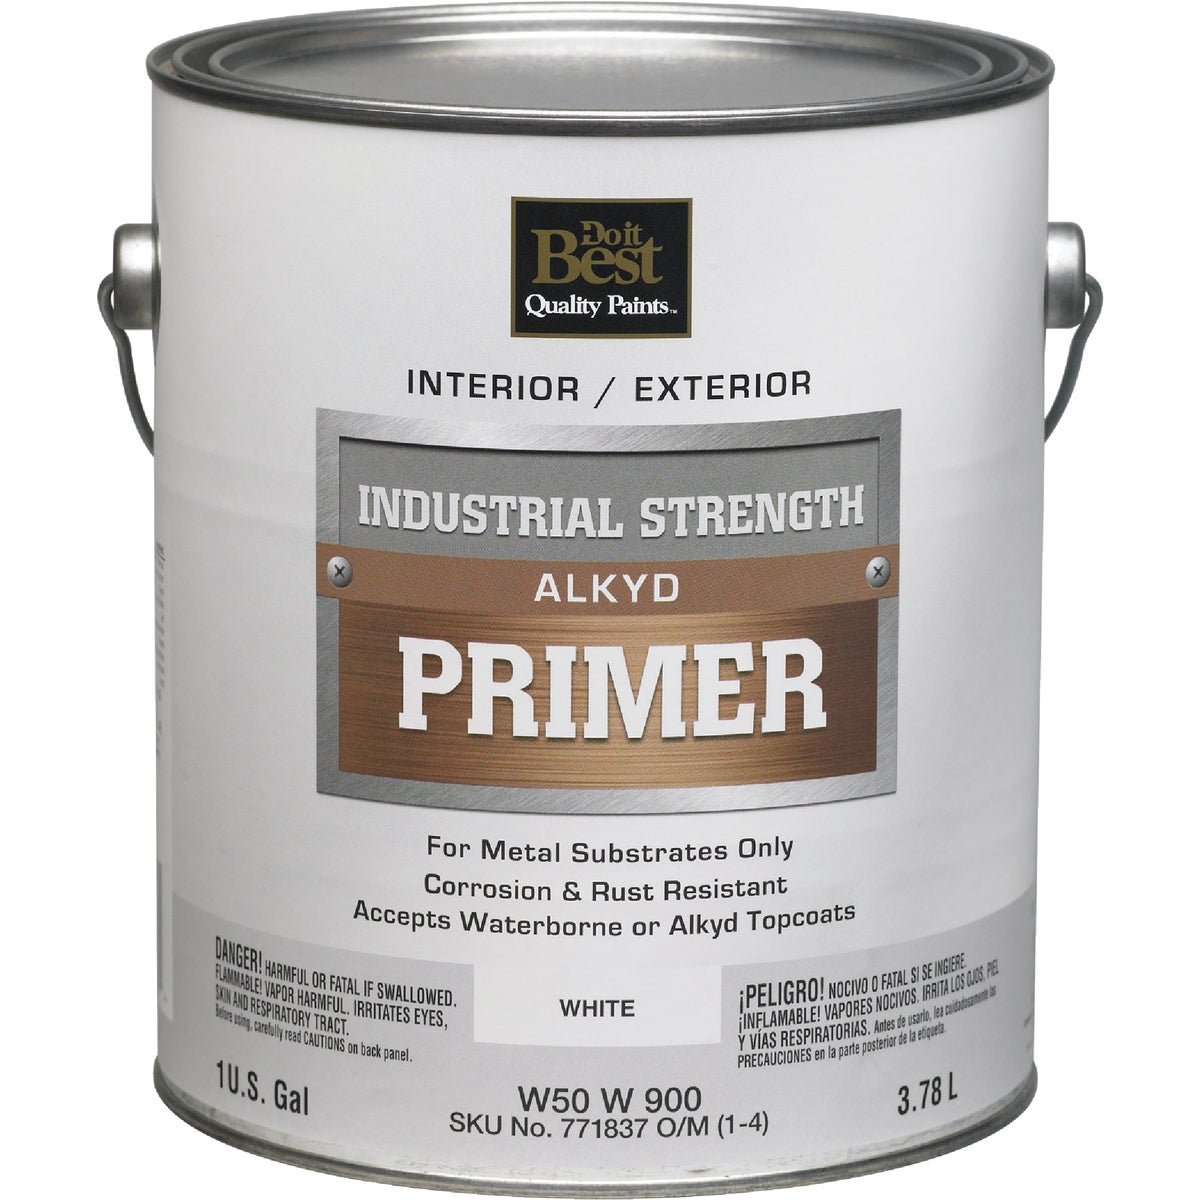 INT/EXT WHT ALKYD PRIMER - W50W00900-16 by Do it Best